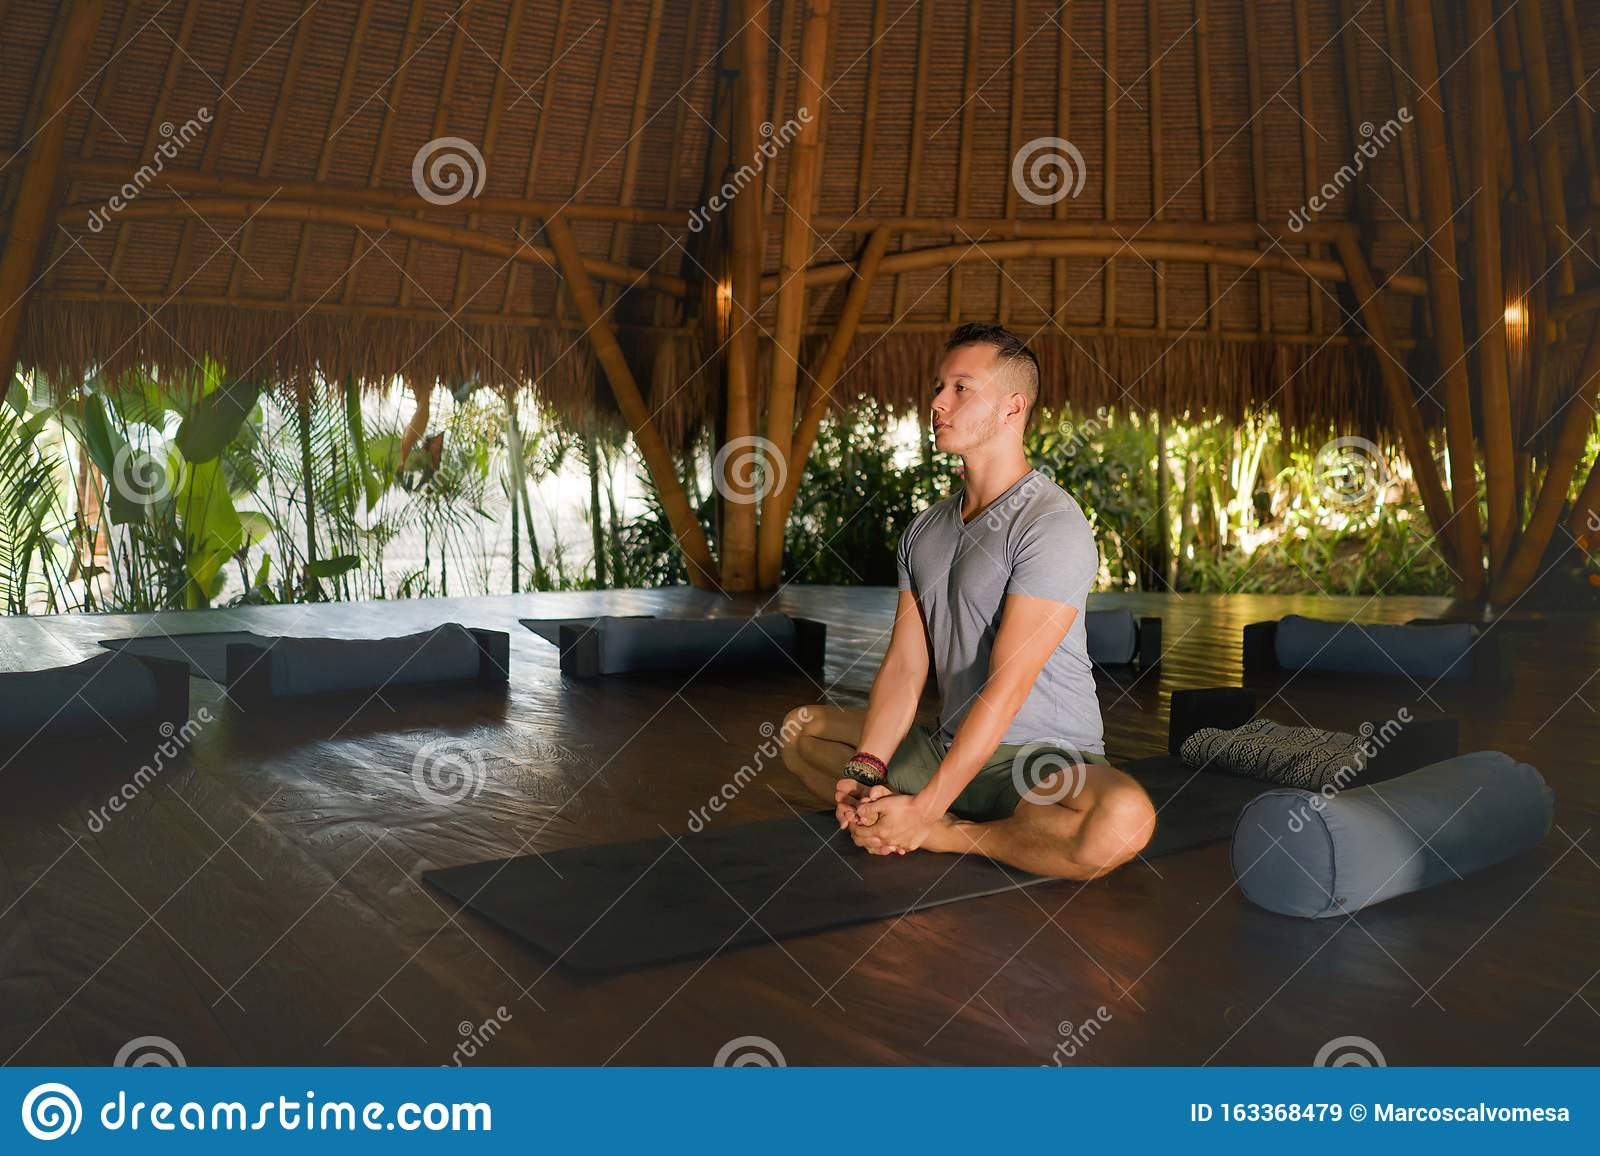 Relaxed Man Sitting In Yoga Pose Stock Photo - Image of